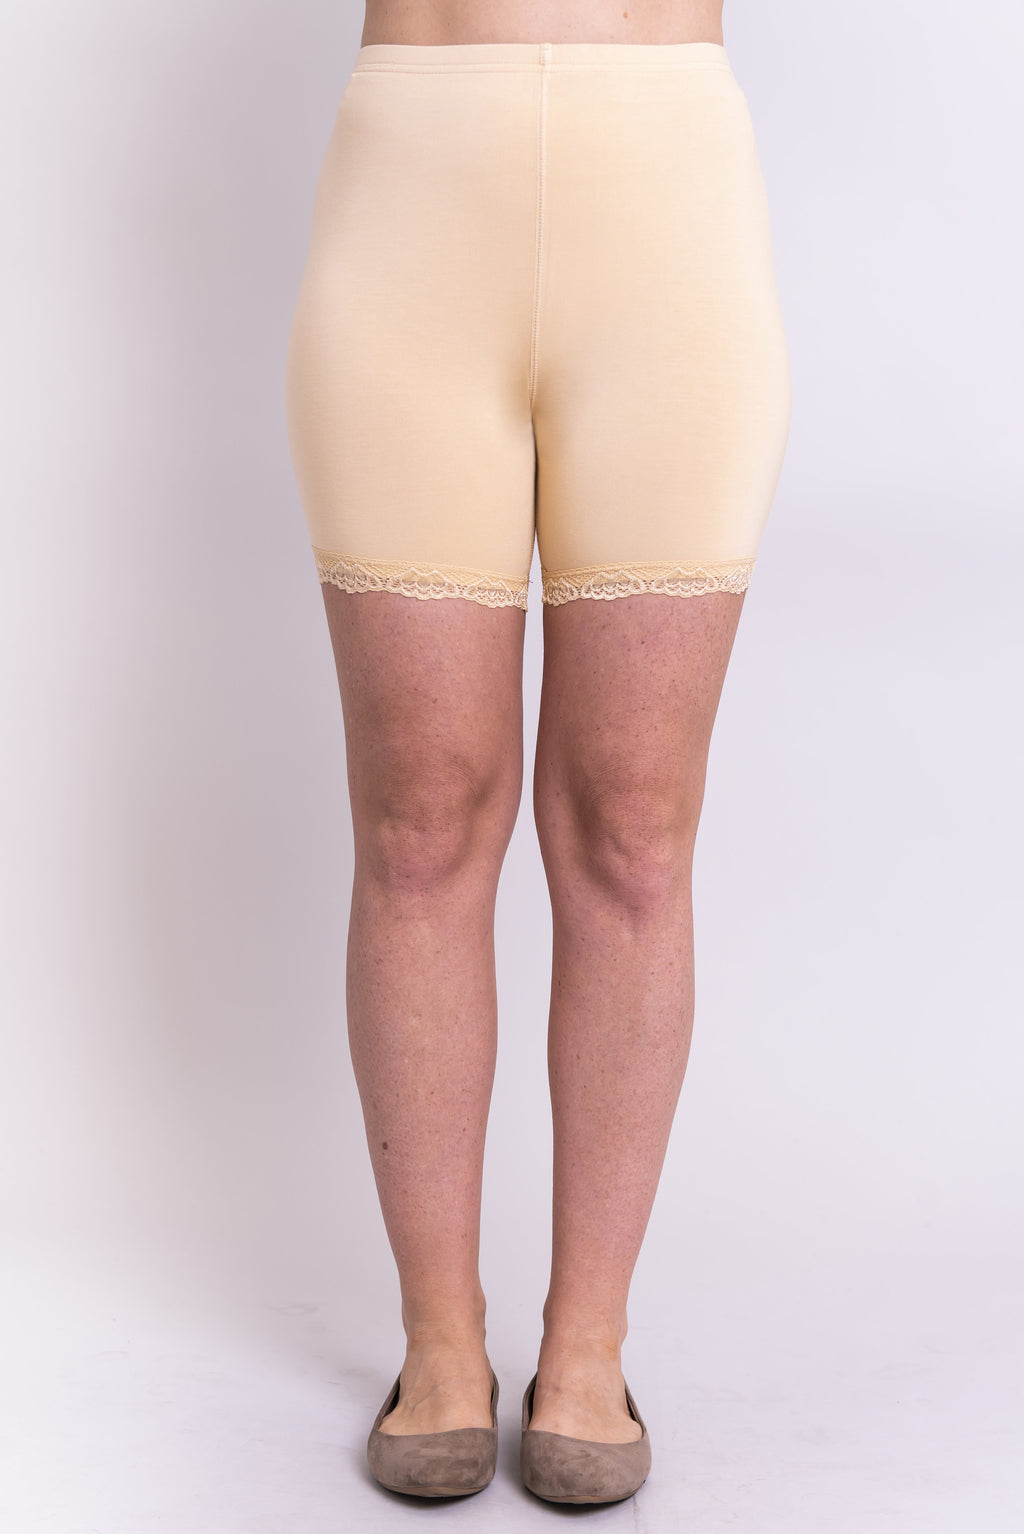 Kitty Undershorts, Beige, Bamboo - Blue Sky Clothing Co